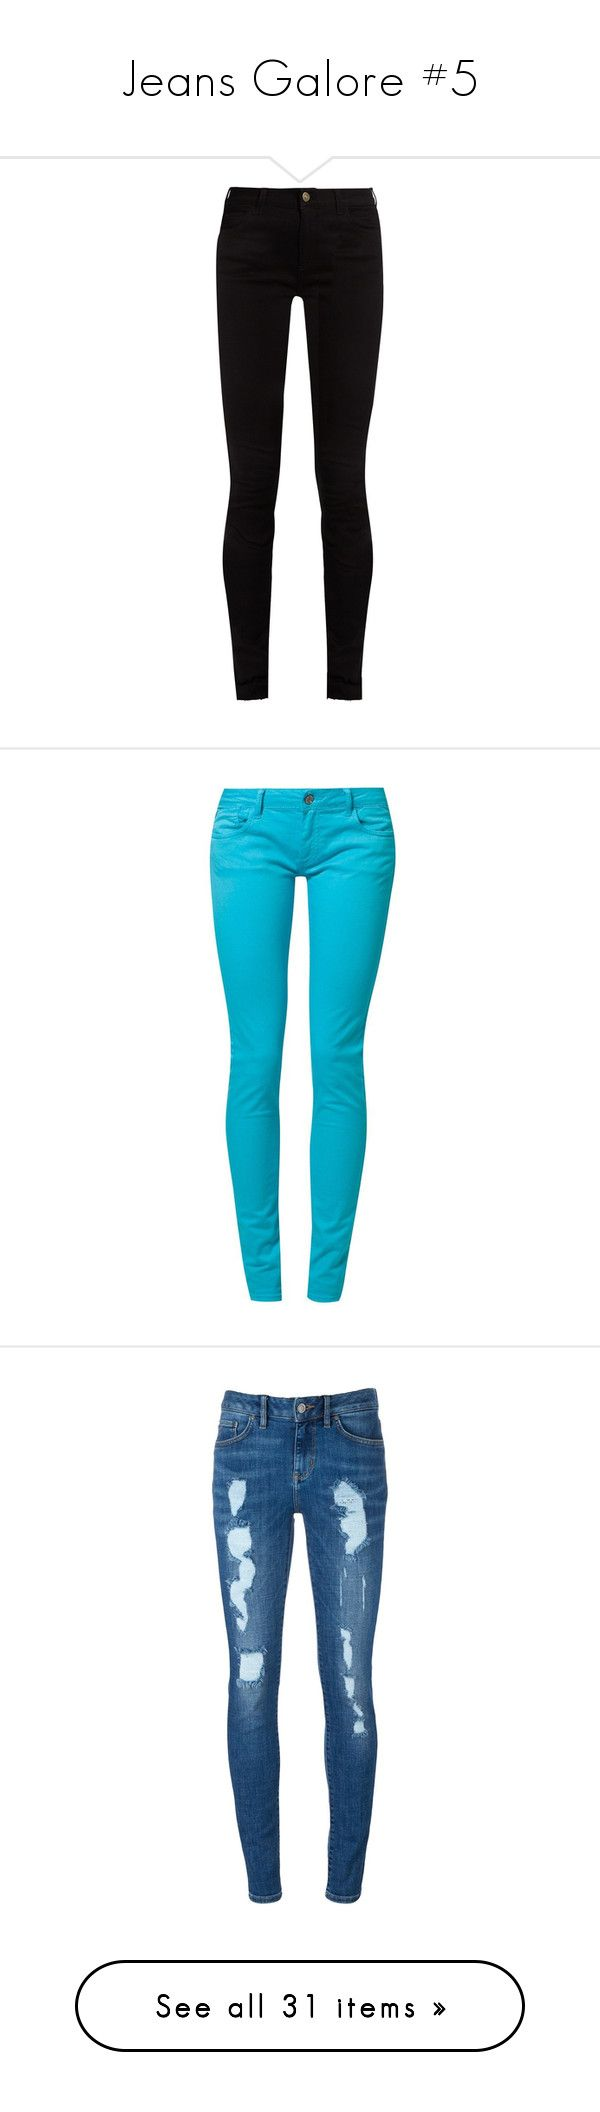 """""""Jeans Galore #5"""" by wolfie-girl1999 ❤ liked on Polyvore featuring jeans, pants, bottoms, calça, black, cuffed skinny jeans, super skinny jeans, denim skinny jeans, stretch skinny jeans and stretch jeans"""